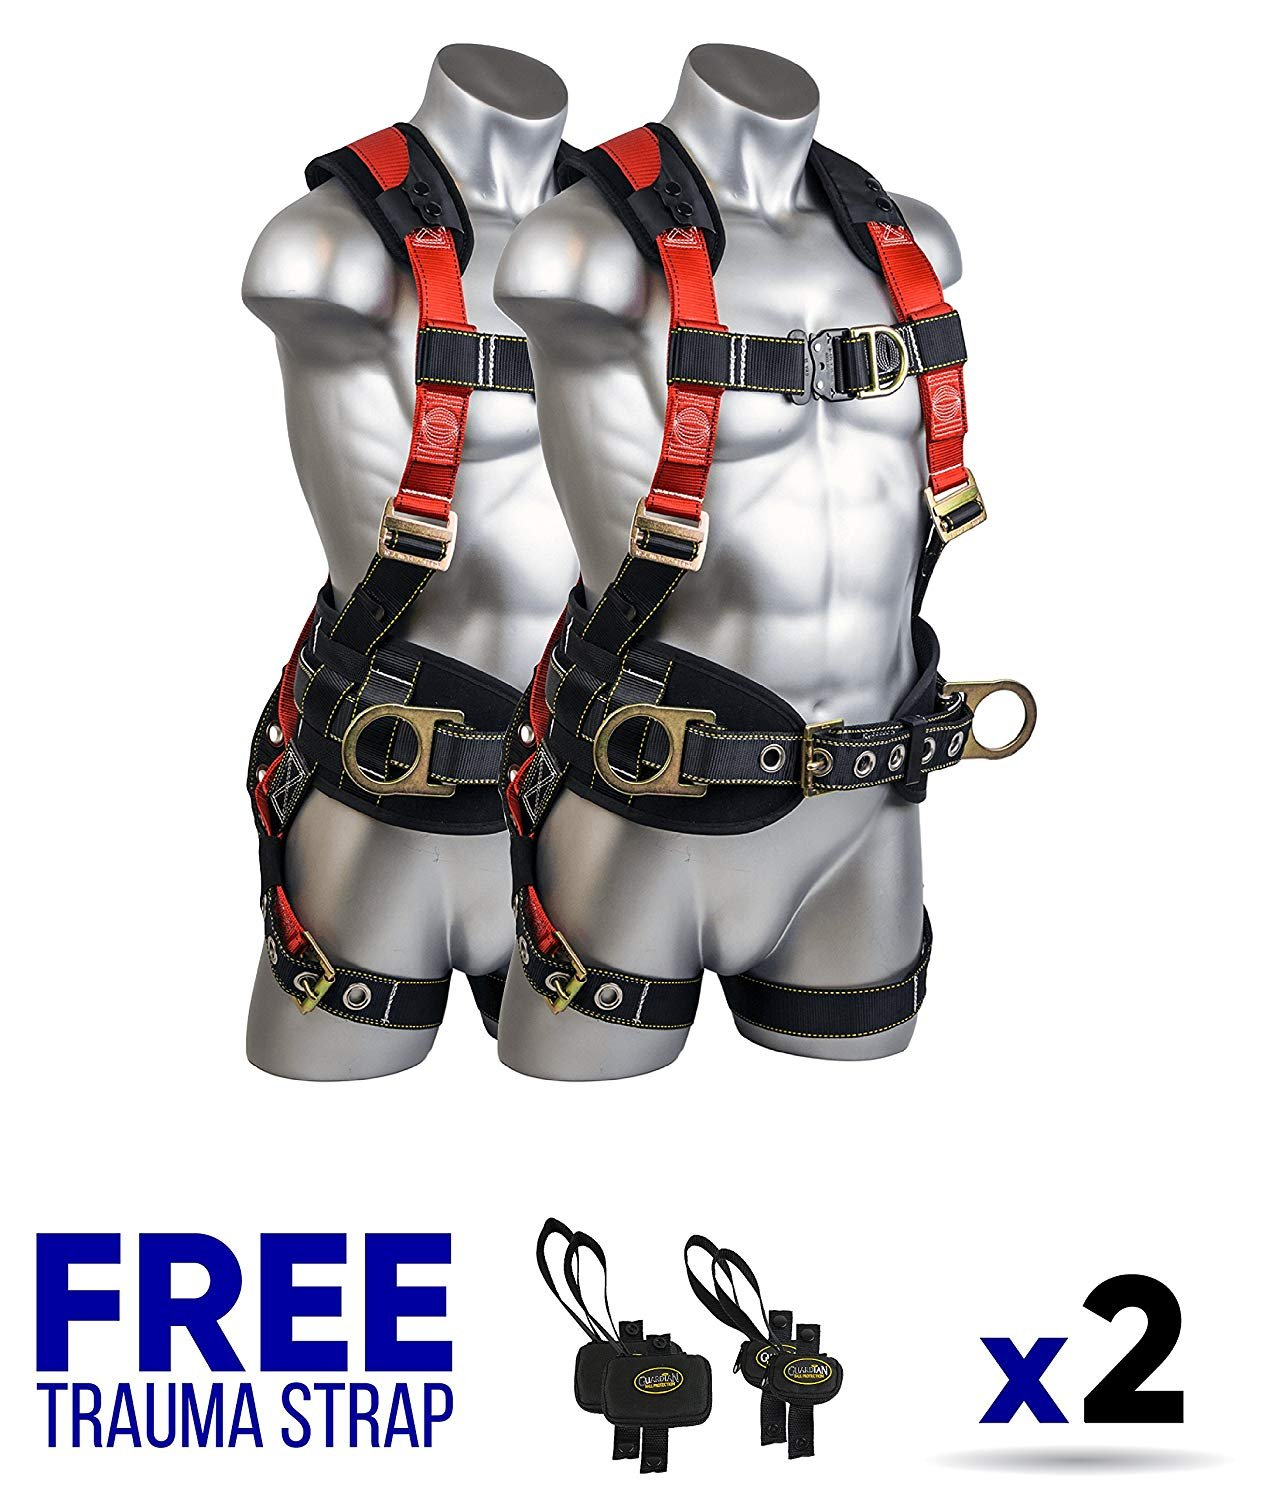 Guardian Fall Protection 11173 M-L Seraph Construction Harness with Side D-Rings (2 Units) FREE Trauma Strap